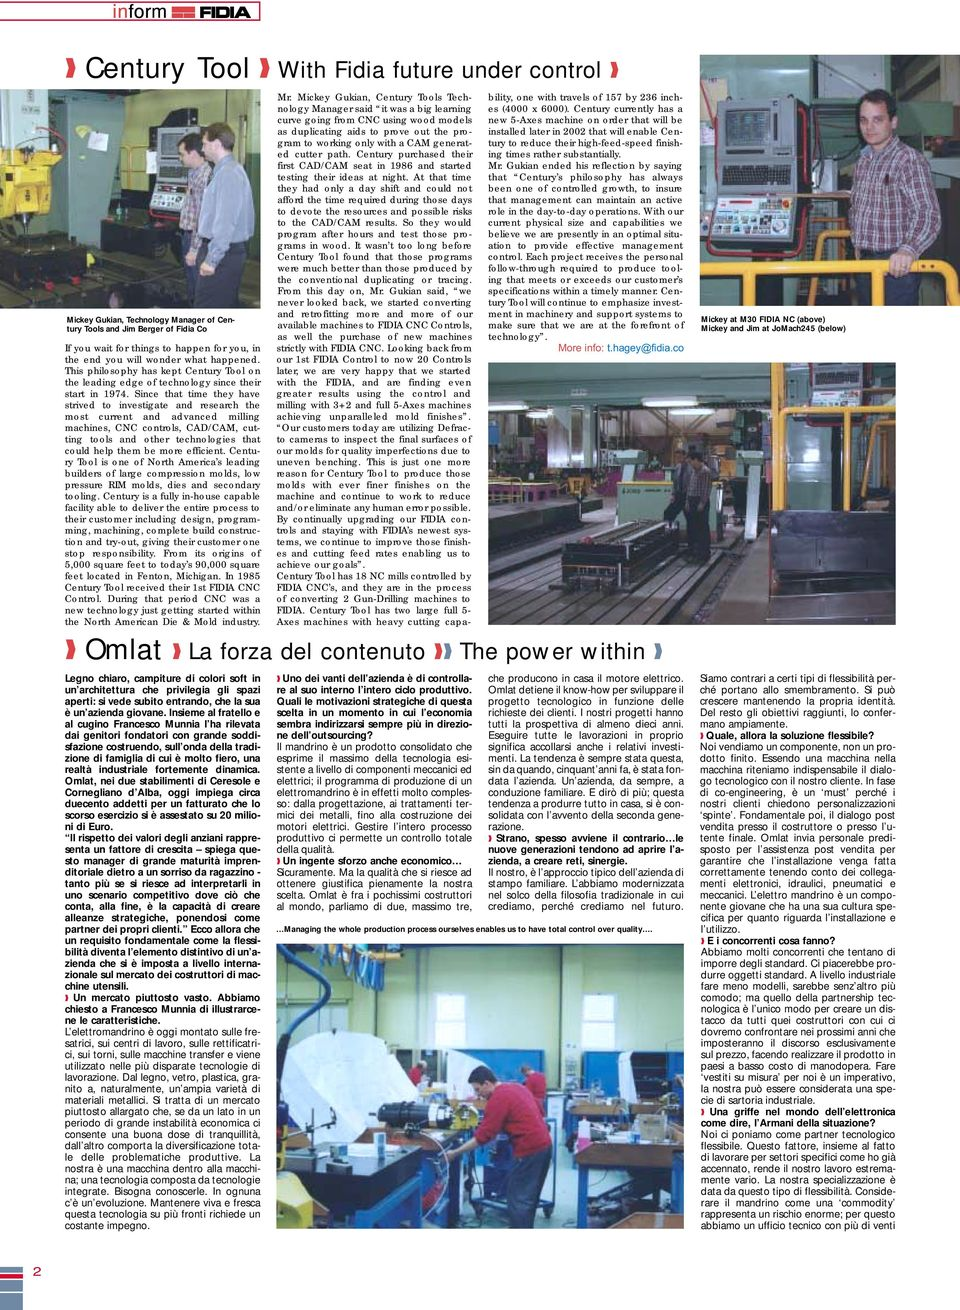 Since that time they have strived to investigate and research the most current and advanced milling machines, CNC controls, CAD/CAM, cutting tools and other technologies that could help them be more